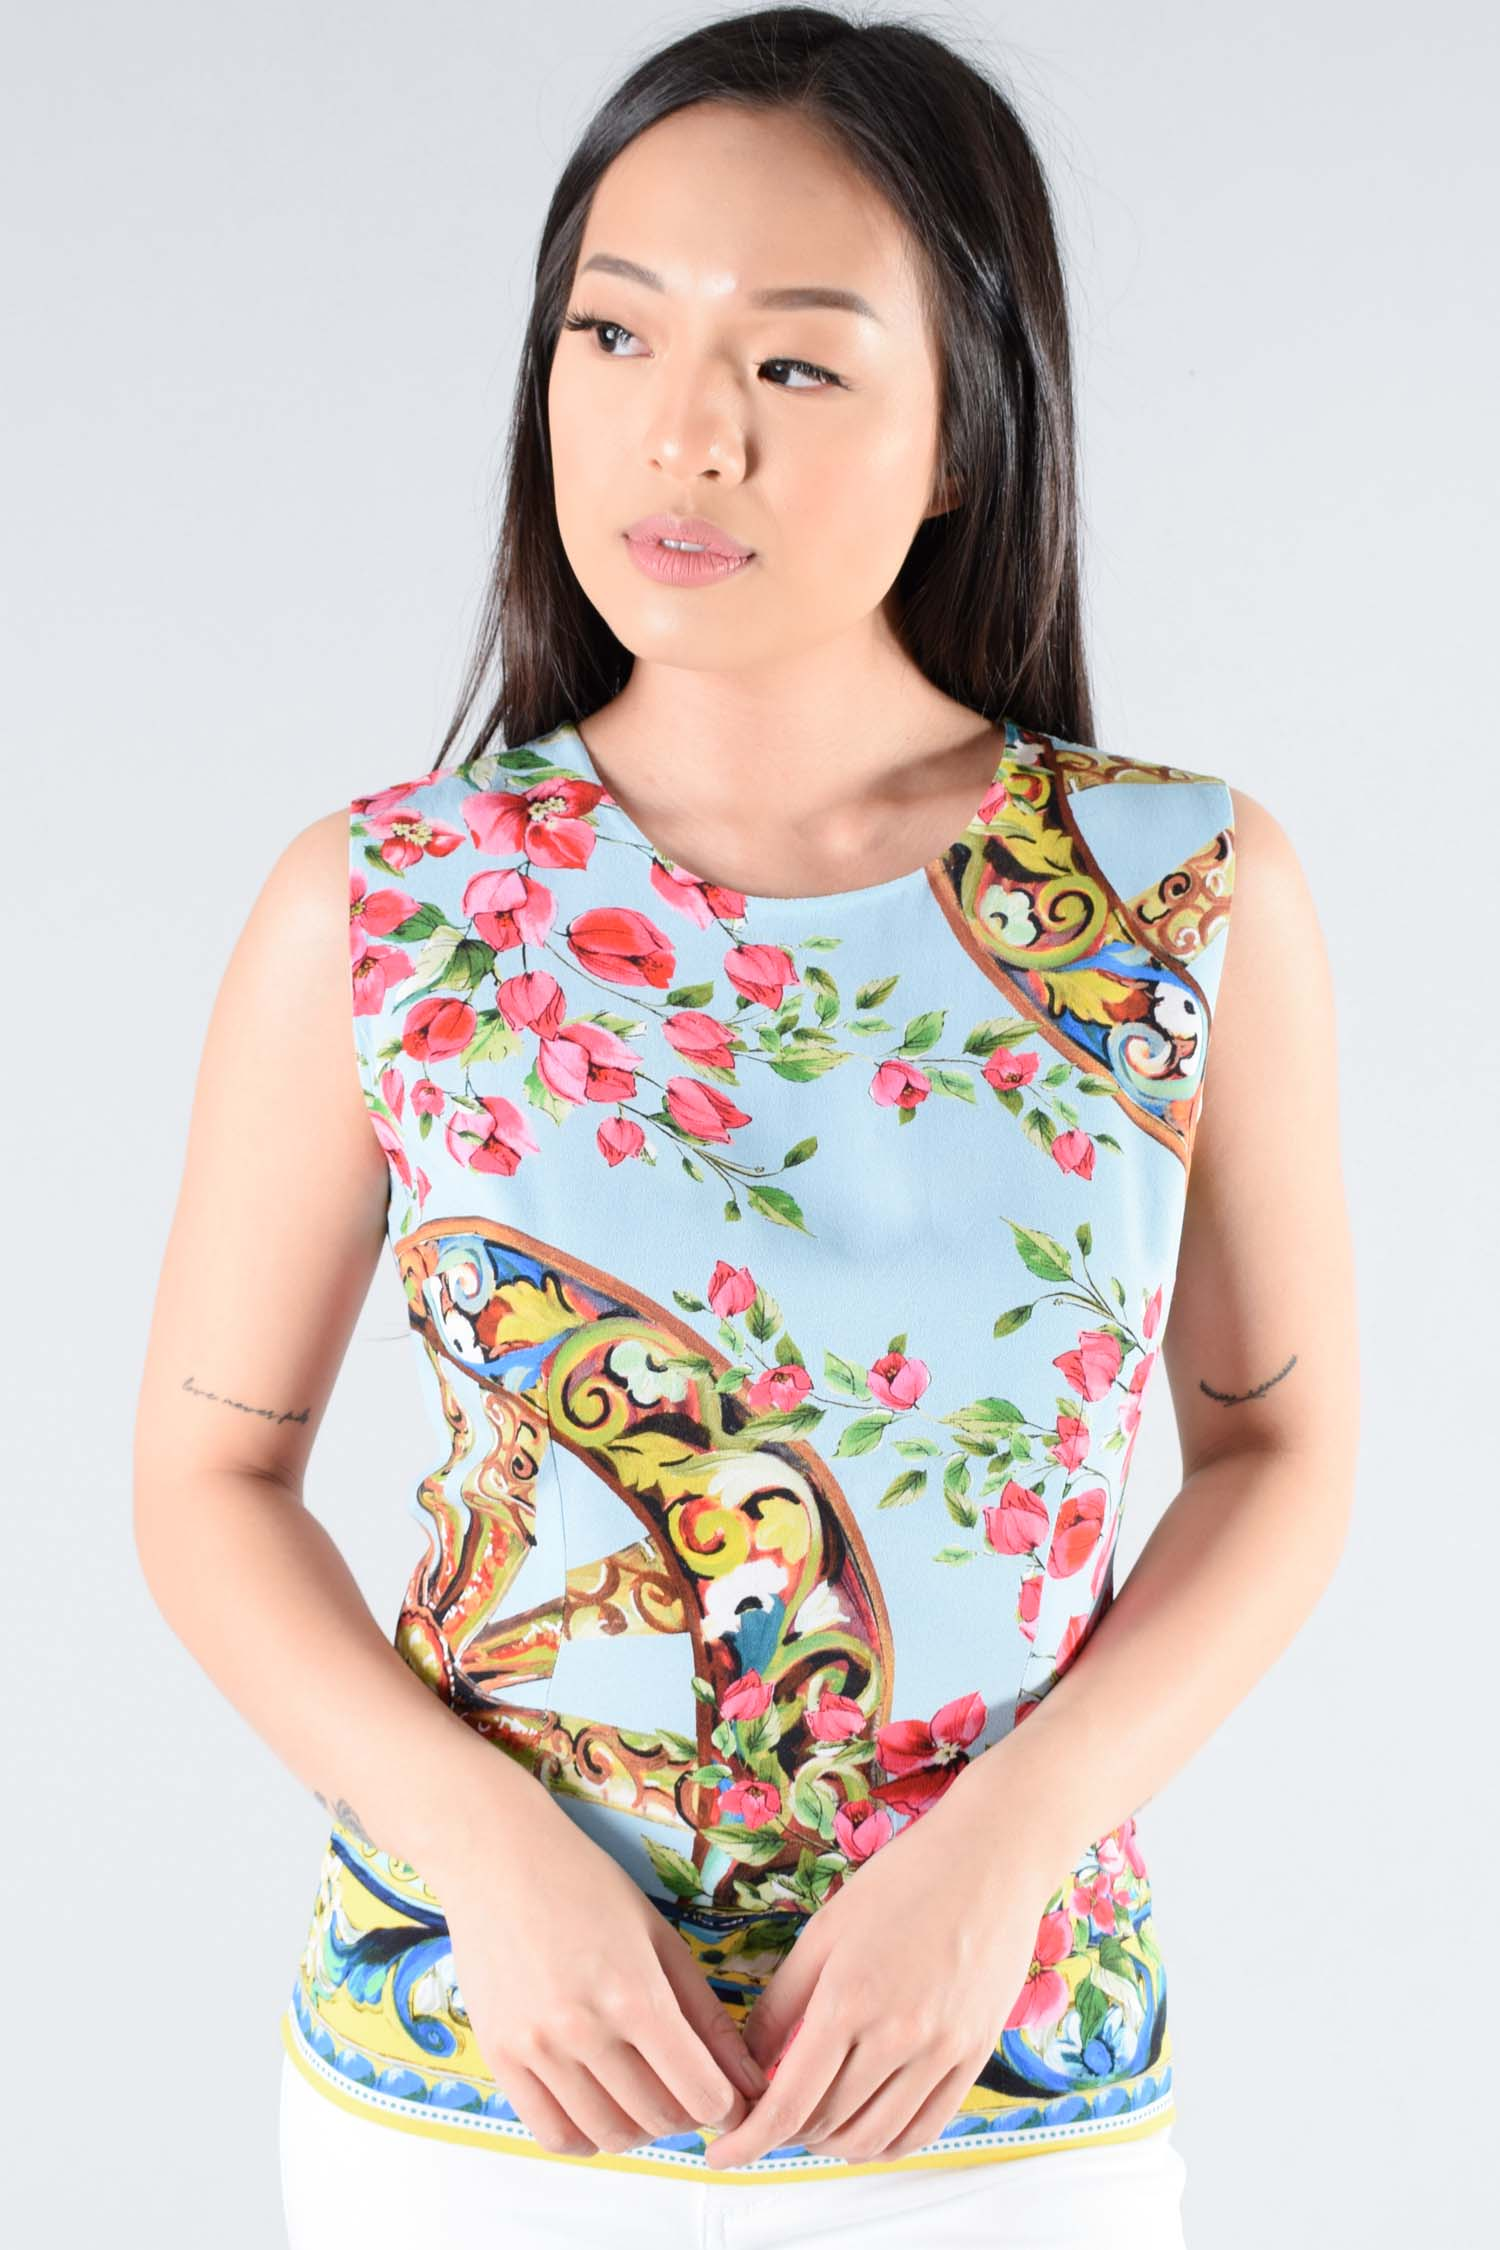 Dolce & Gabbana Blue Floral Sleeveless Top Size 40